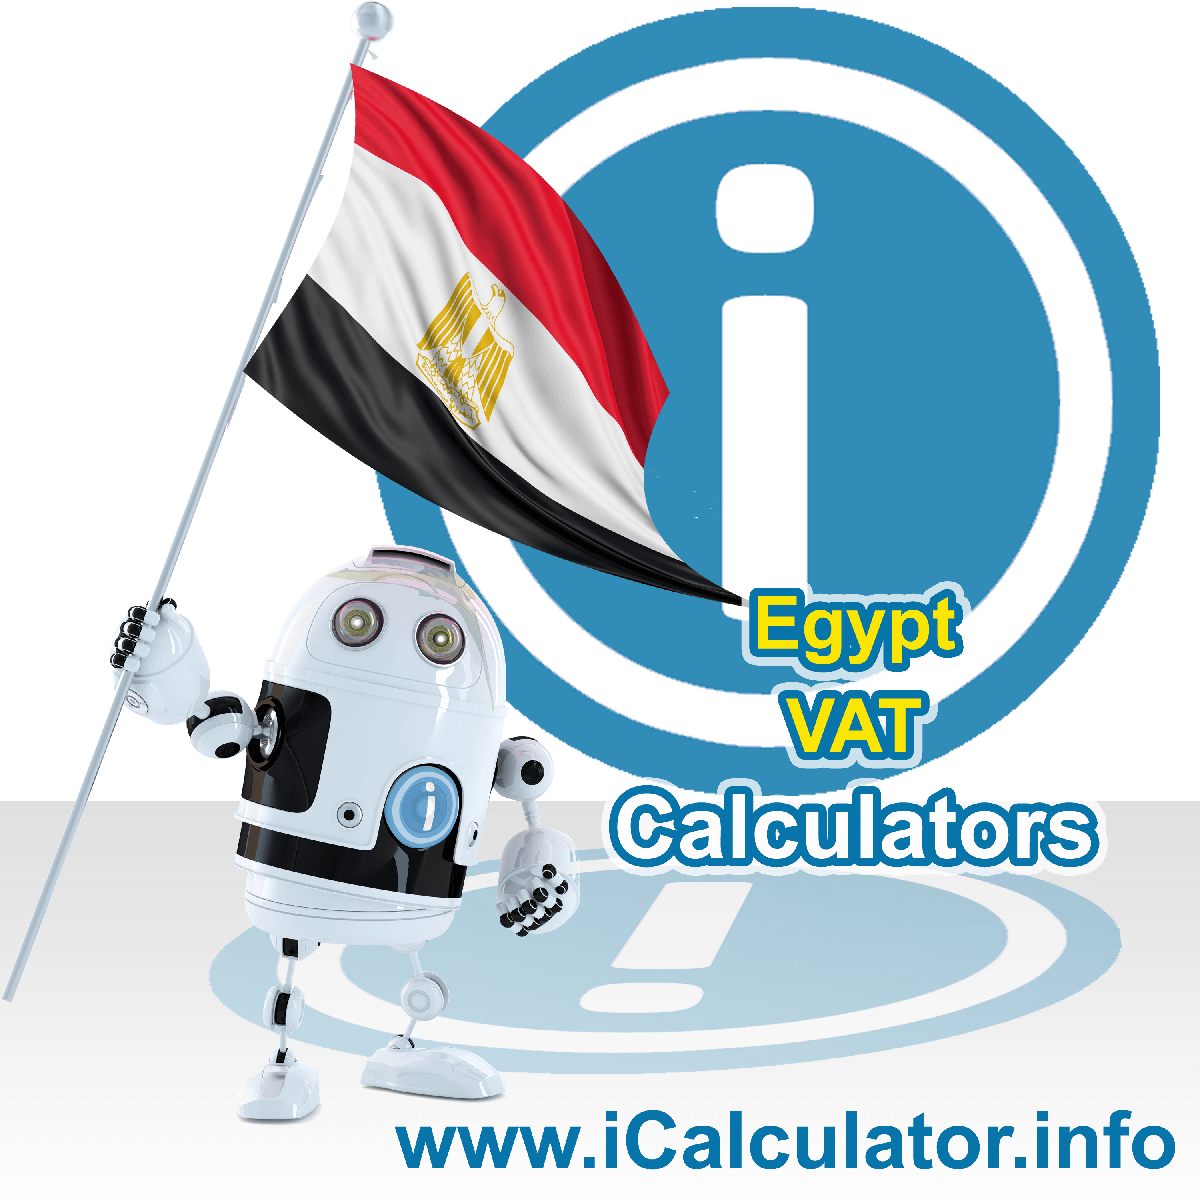 Egypt VAT Calculator. This image shows the Egypt flag and information relating to the VAT formula used for calculating Value Added Tax in Egypt using the Egypt VAT Calculator in 2020